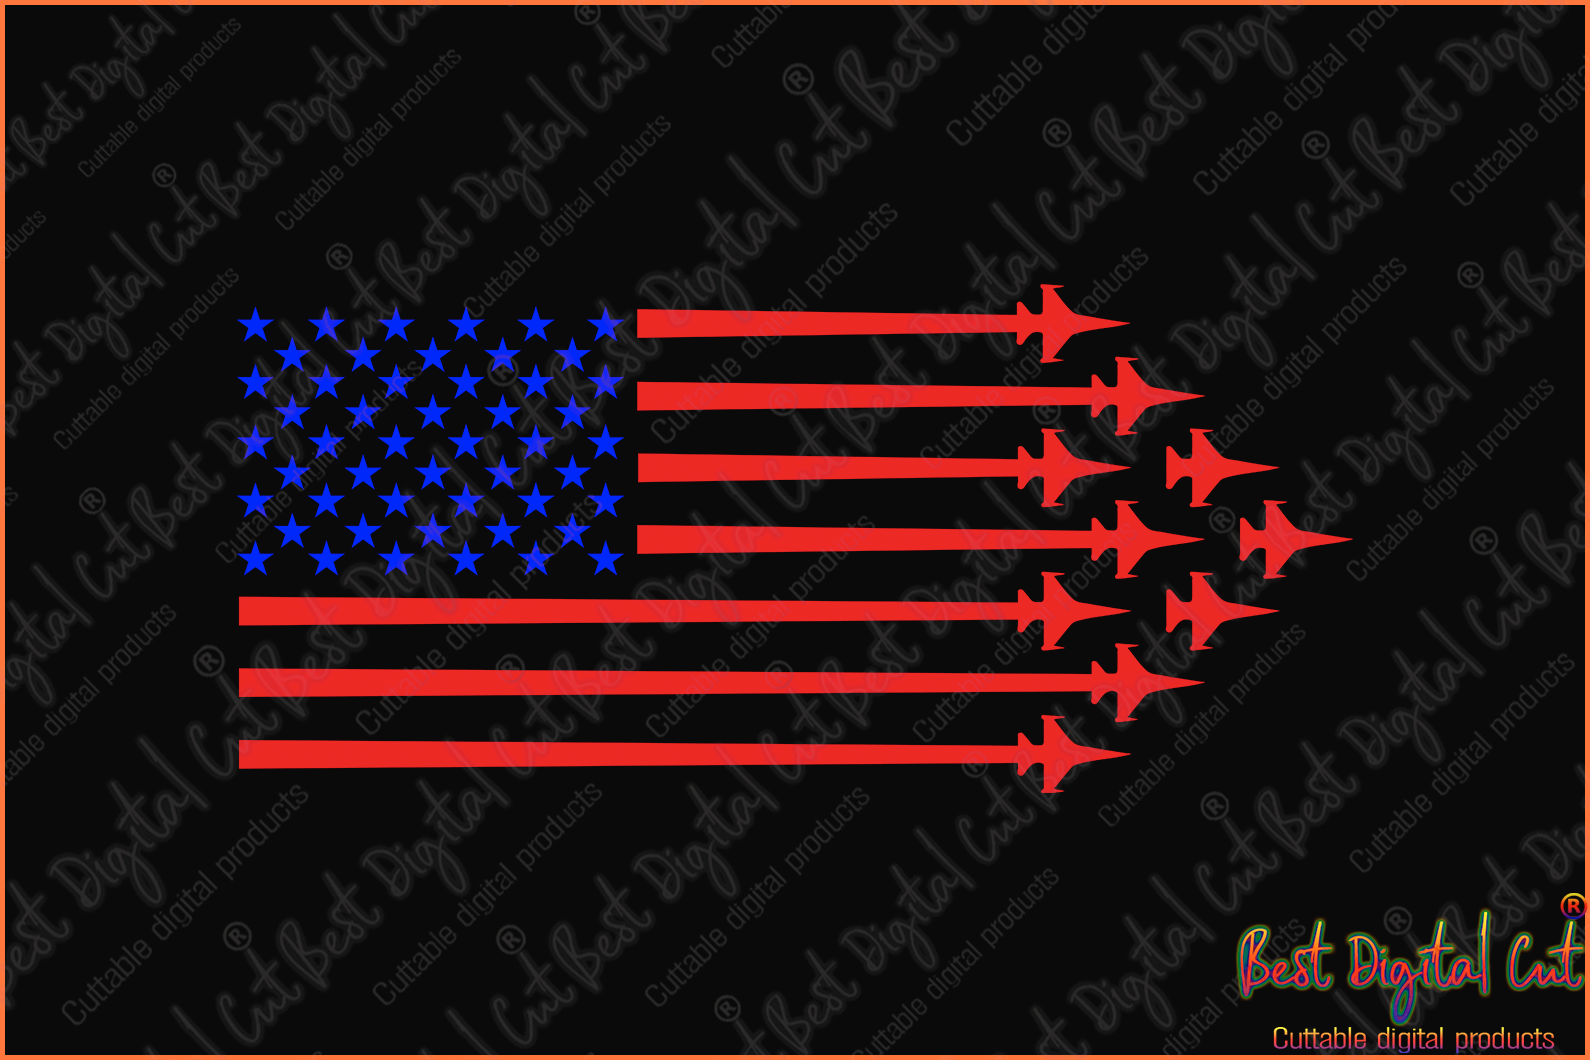 American flag svg,Happy 4th of July 2020 svg,freedom day svg,jubilee day svg,American holiday,1776 July 4th,emancipation day svg,independence day svg,black African hands,American pride gift,black lives matter shirt,black history month